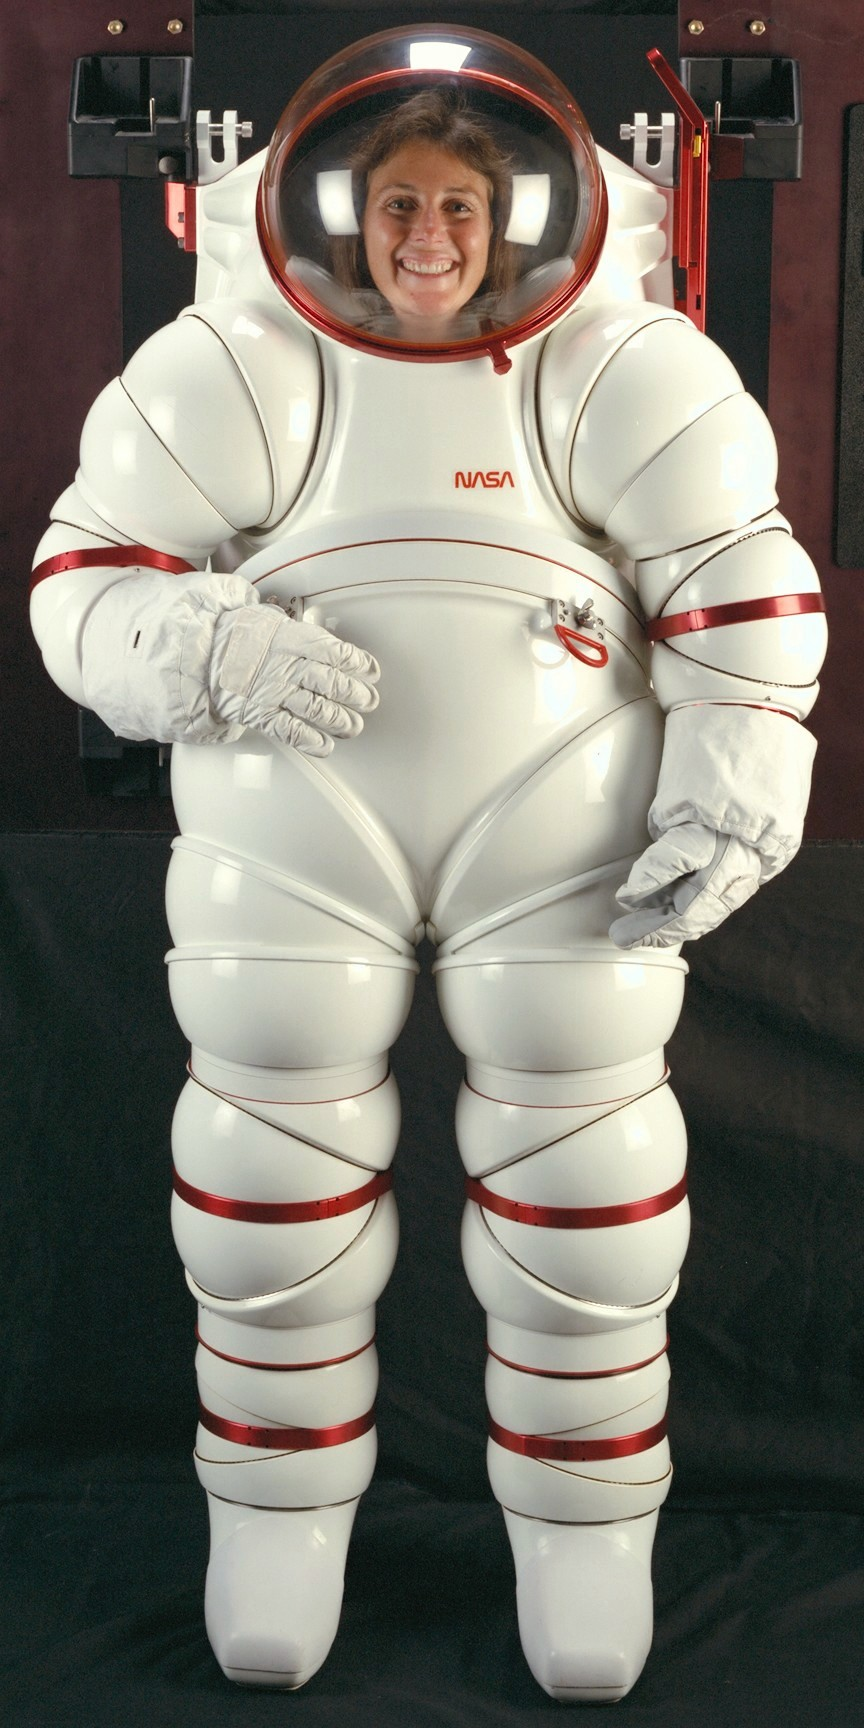 nasa space suit material - photo #25